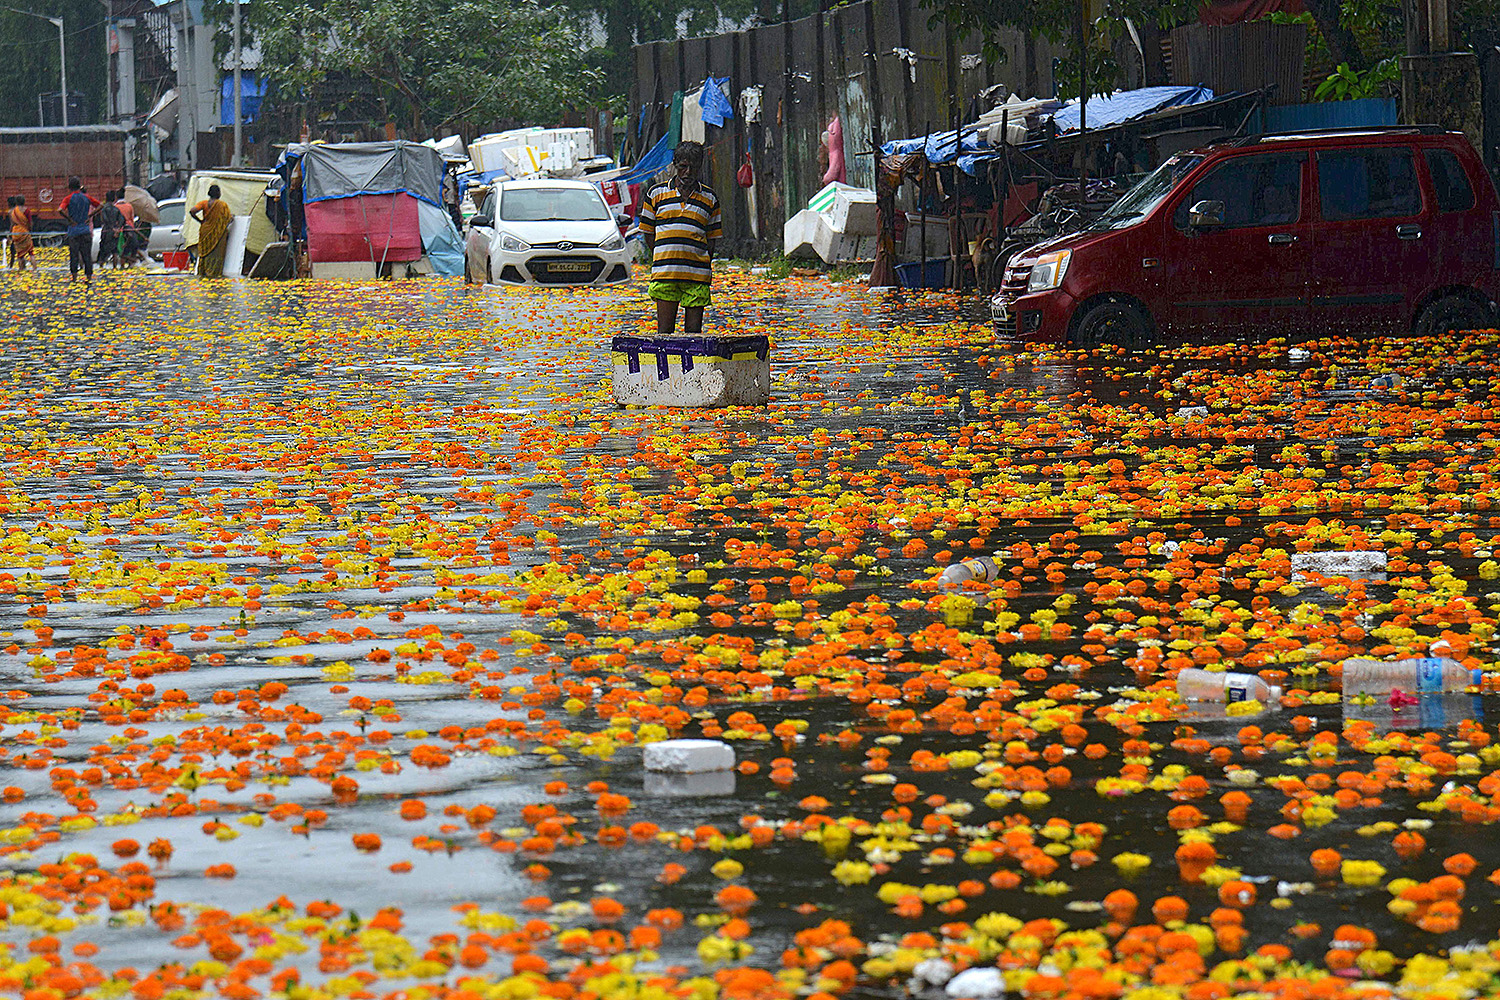 A vendor stands in a flooded flower market following heavy monsoon rains in Mumbai on Sept. 23. SUJIT JAISWAL/AFP via Getty Images